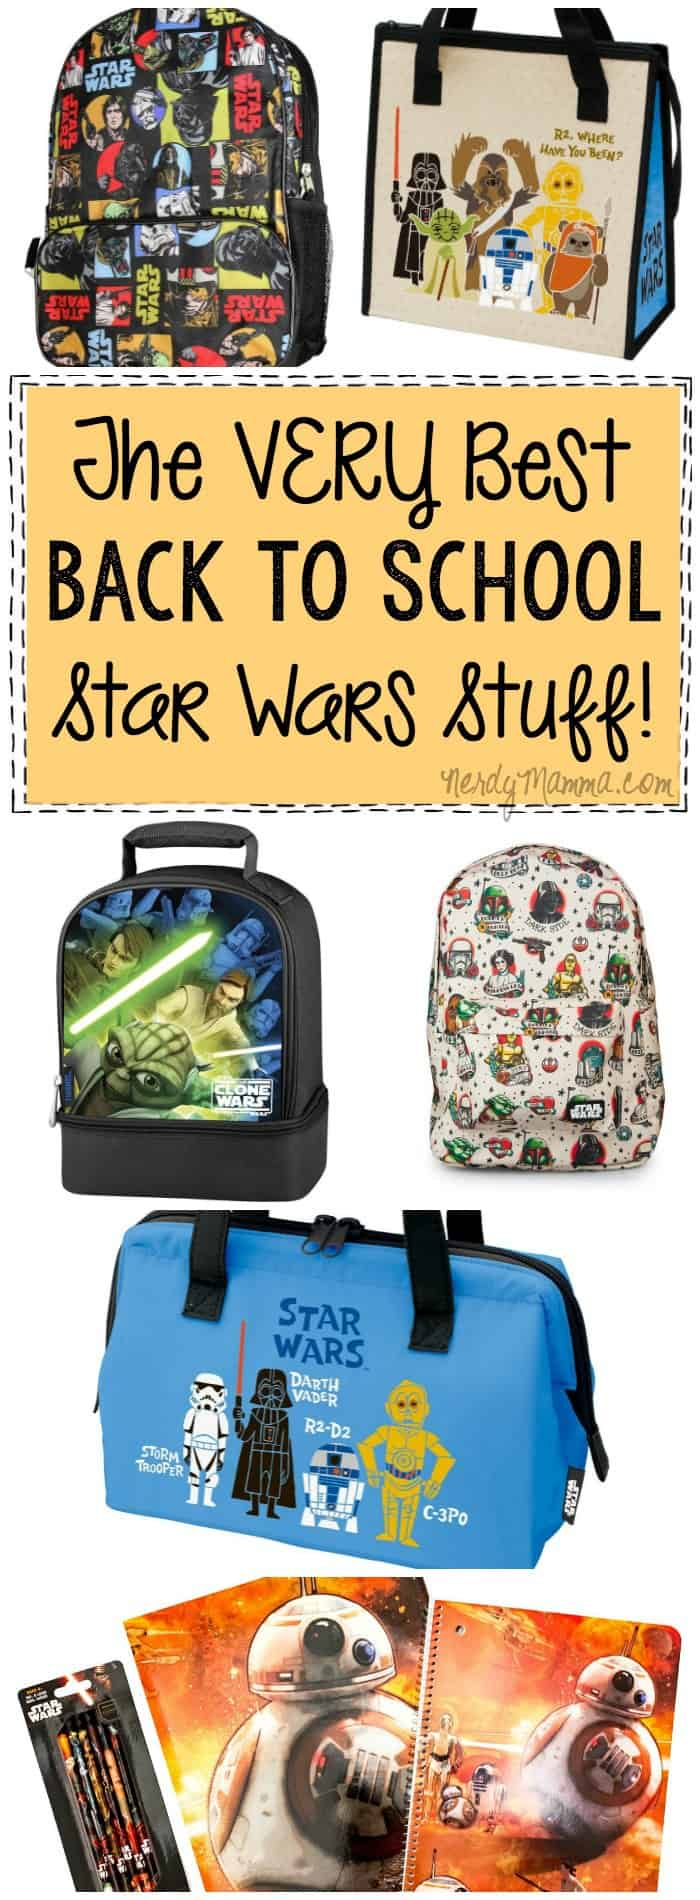 You cannot head back to school without this totally awesome Star Wars stuff! Backpacks to pens to totally adorable lunch totes, everything you need for back to school is here!!